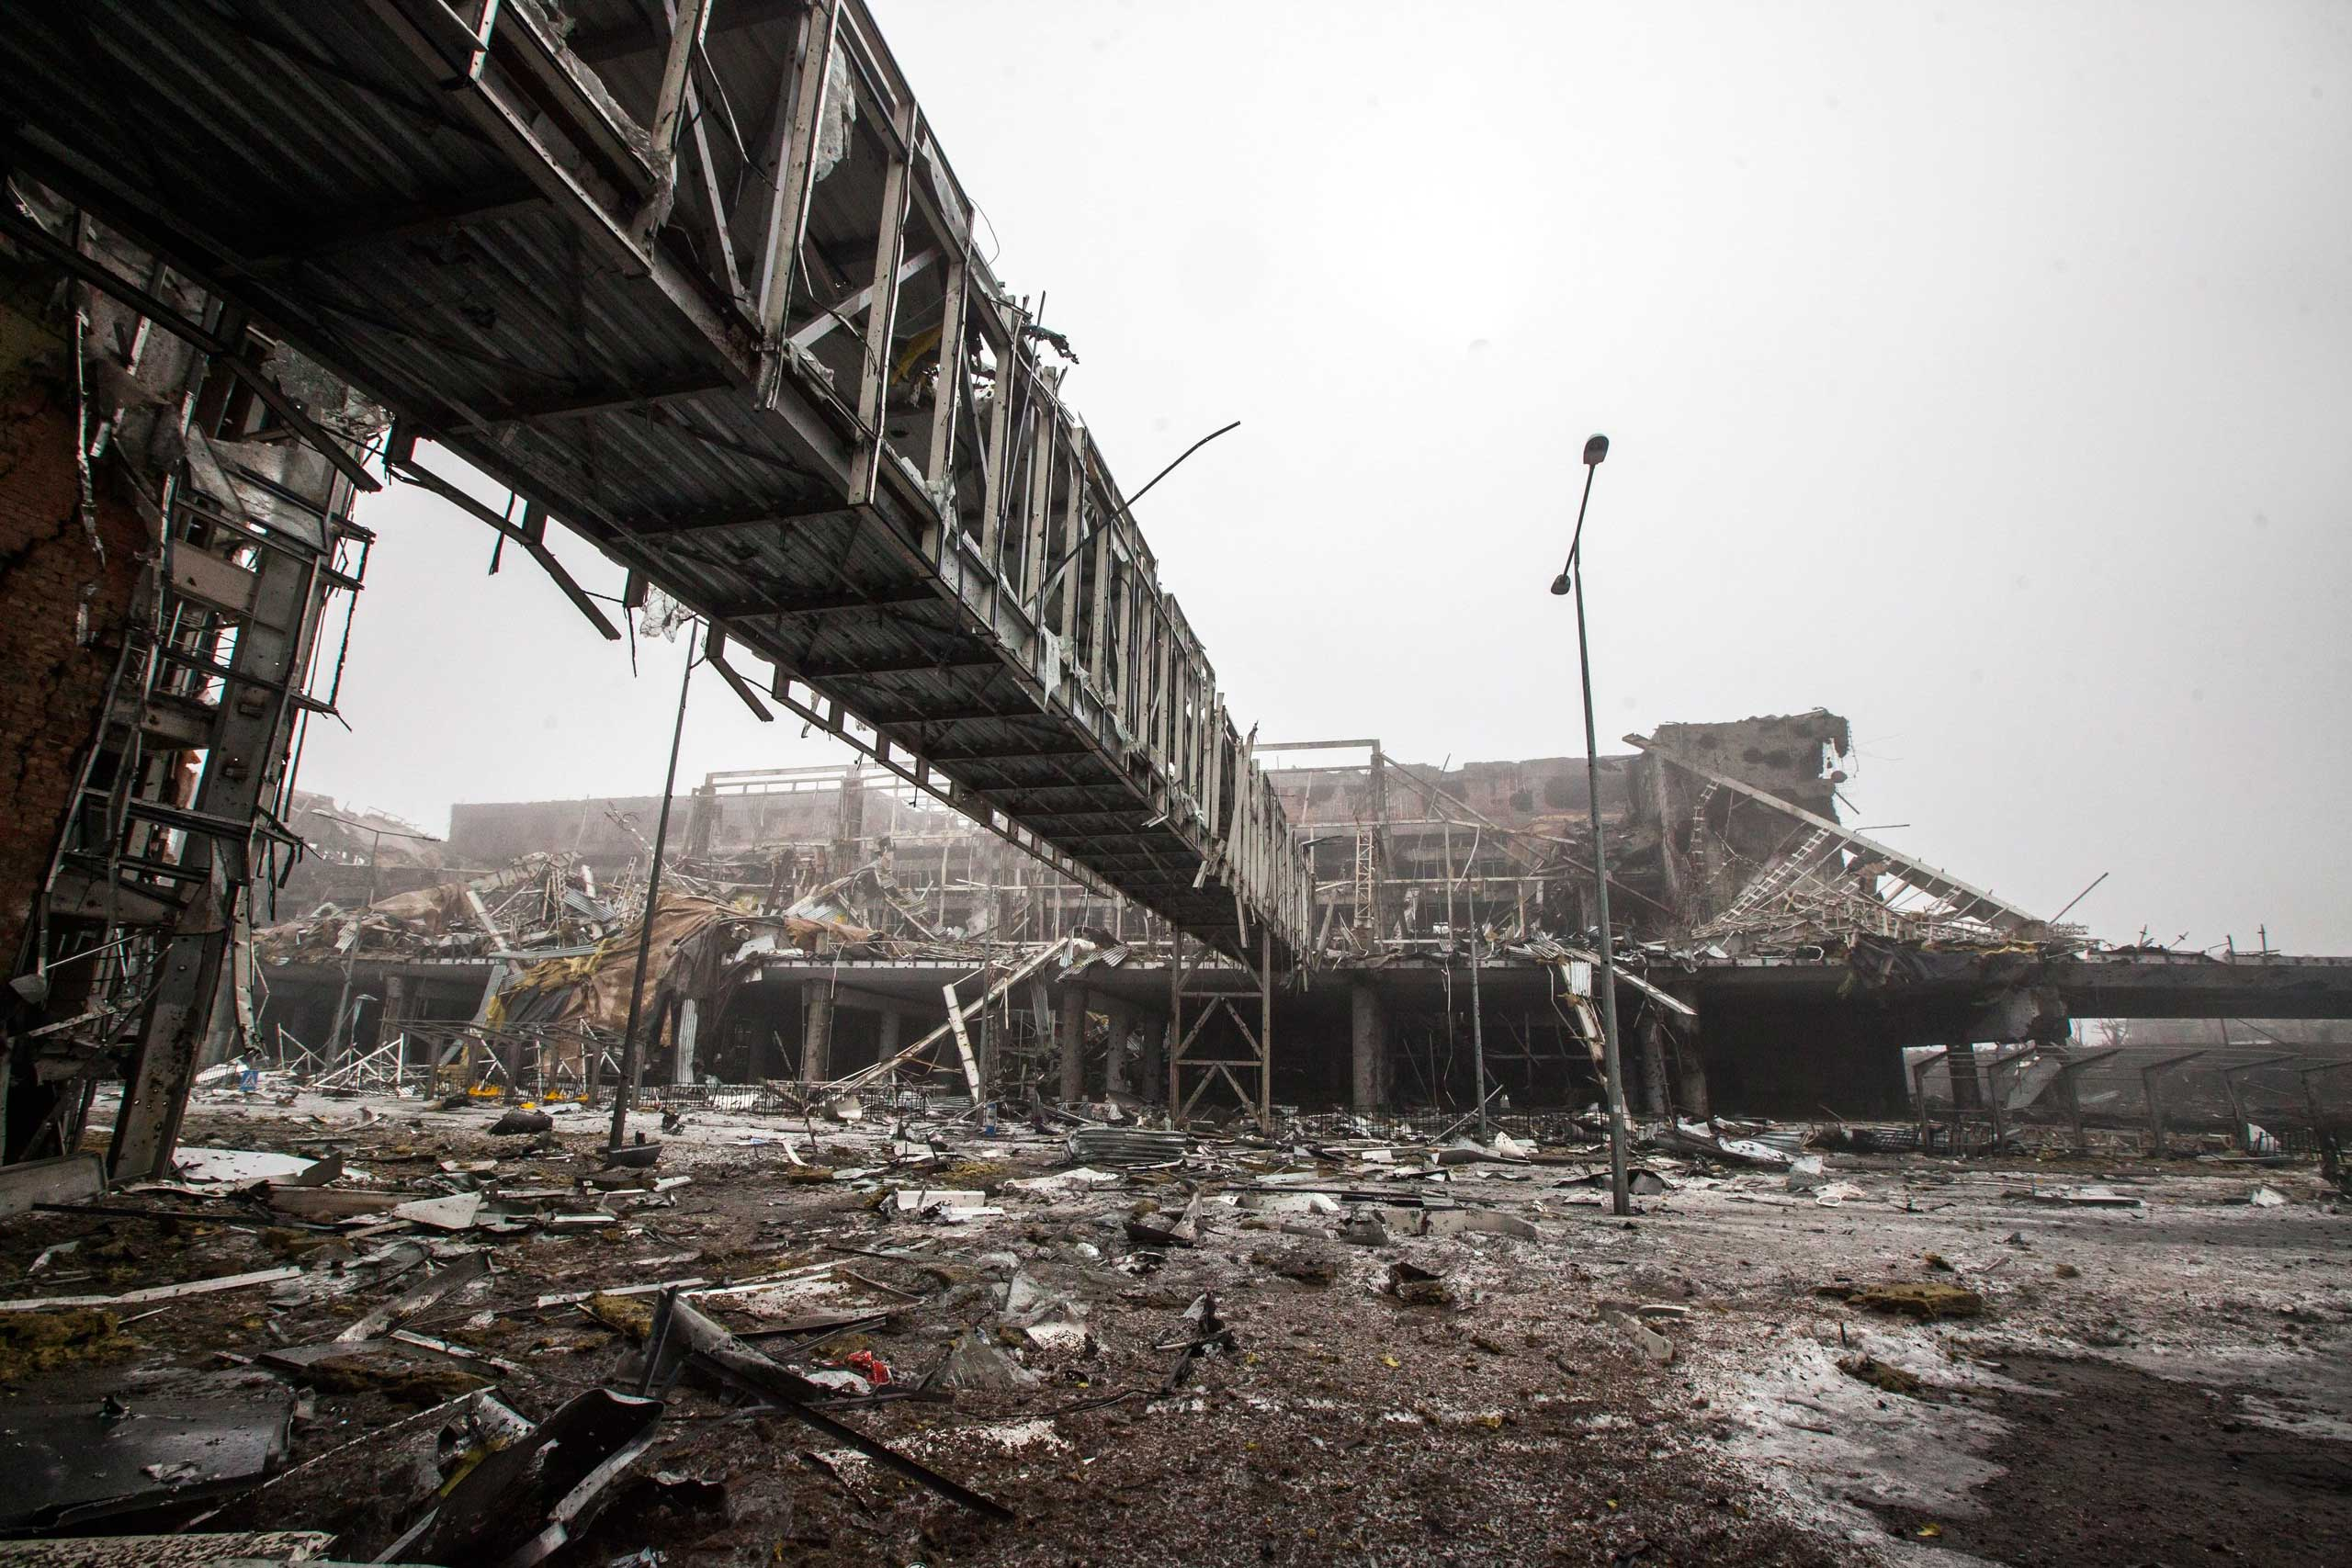 The destroyed airport on Jan. 21, 2015.